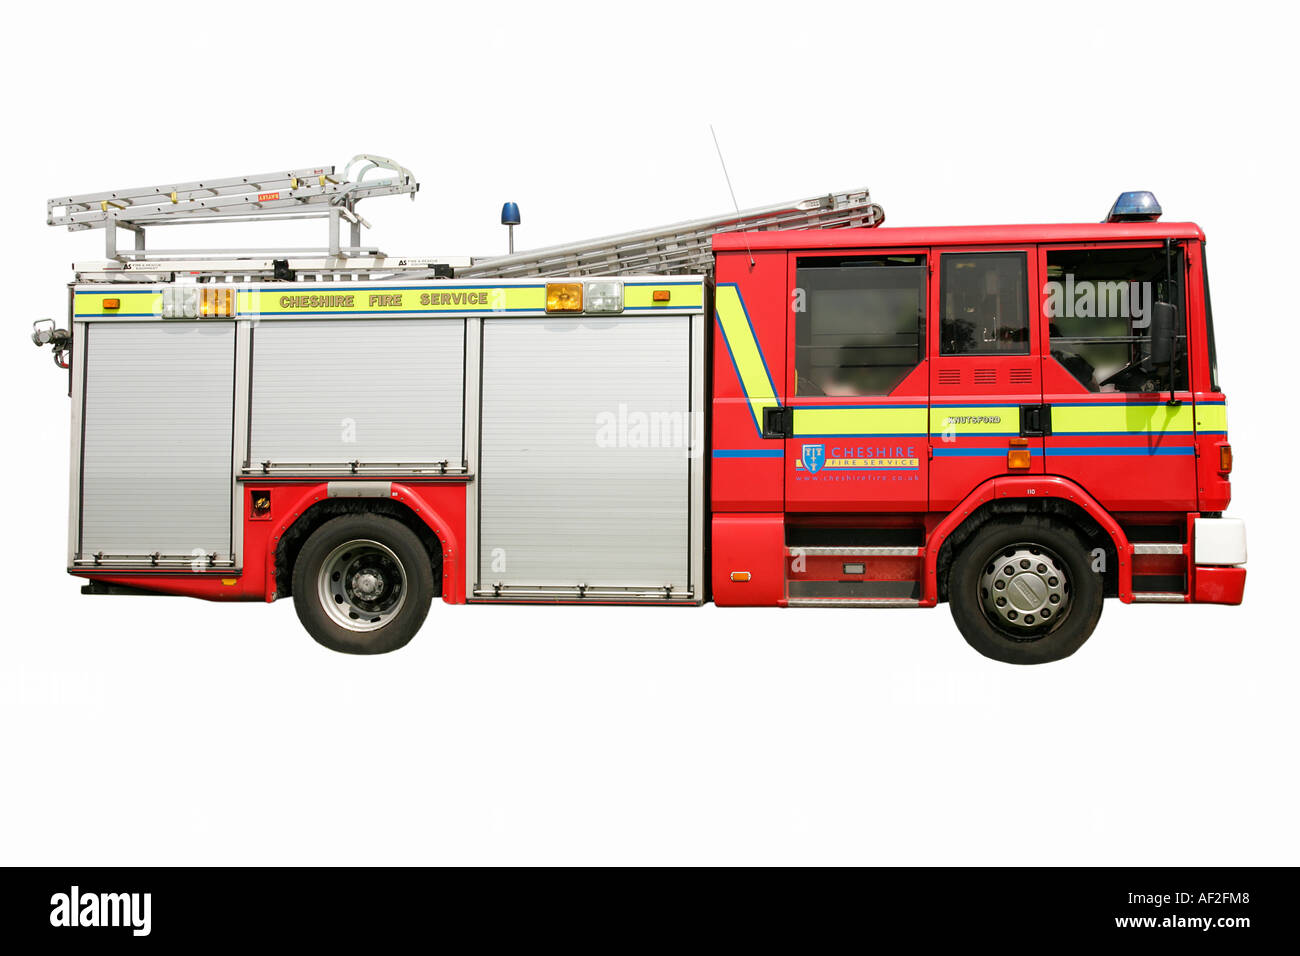 Fire track keeper street emergency alarm red speed danger destructive brave save life Cheshire fire brigade water ladder bucket - Stock Image